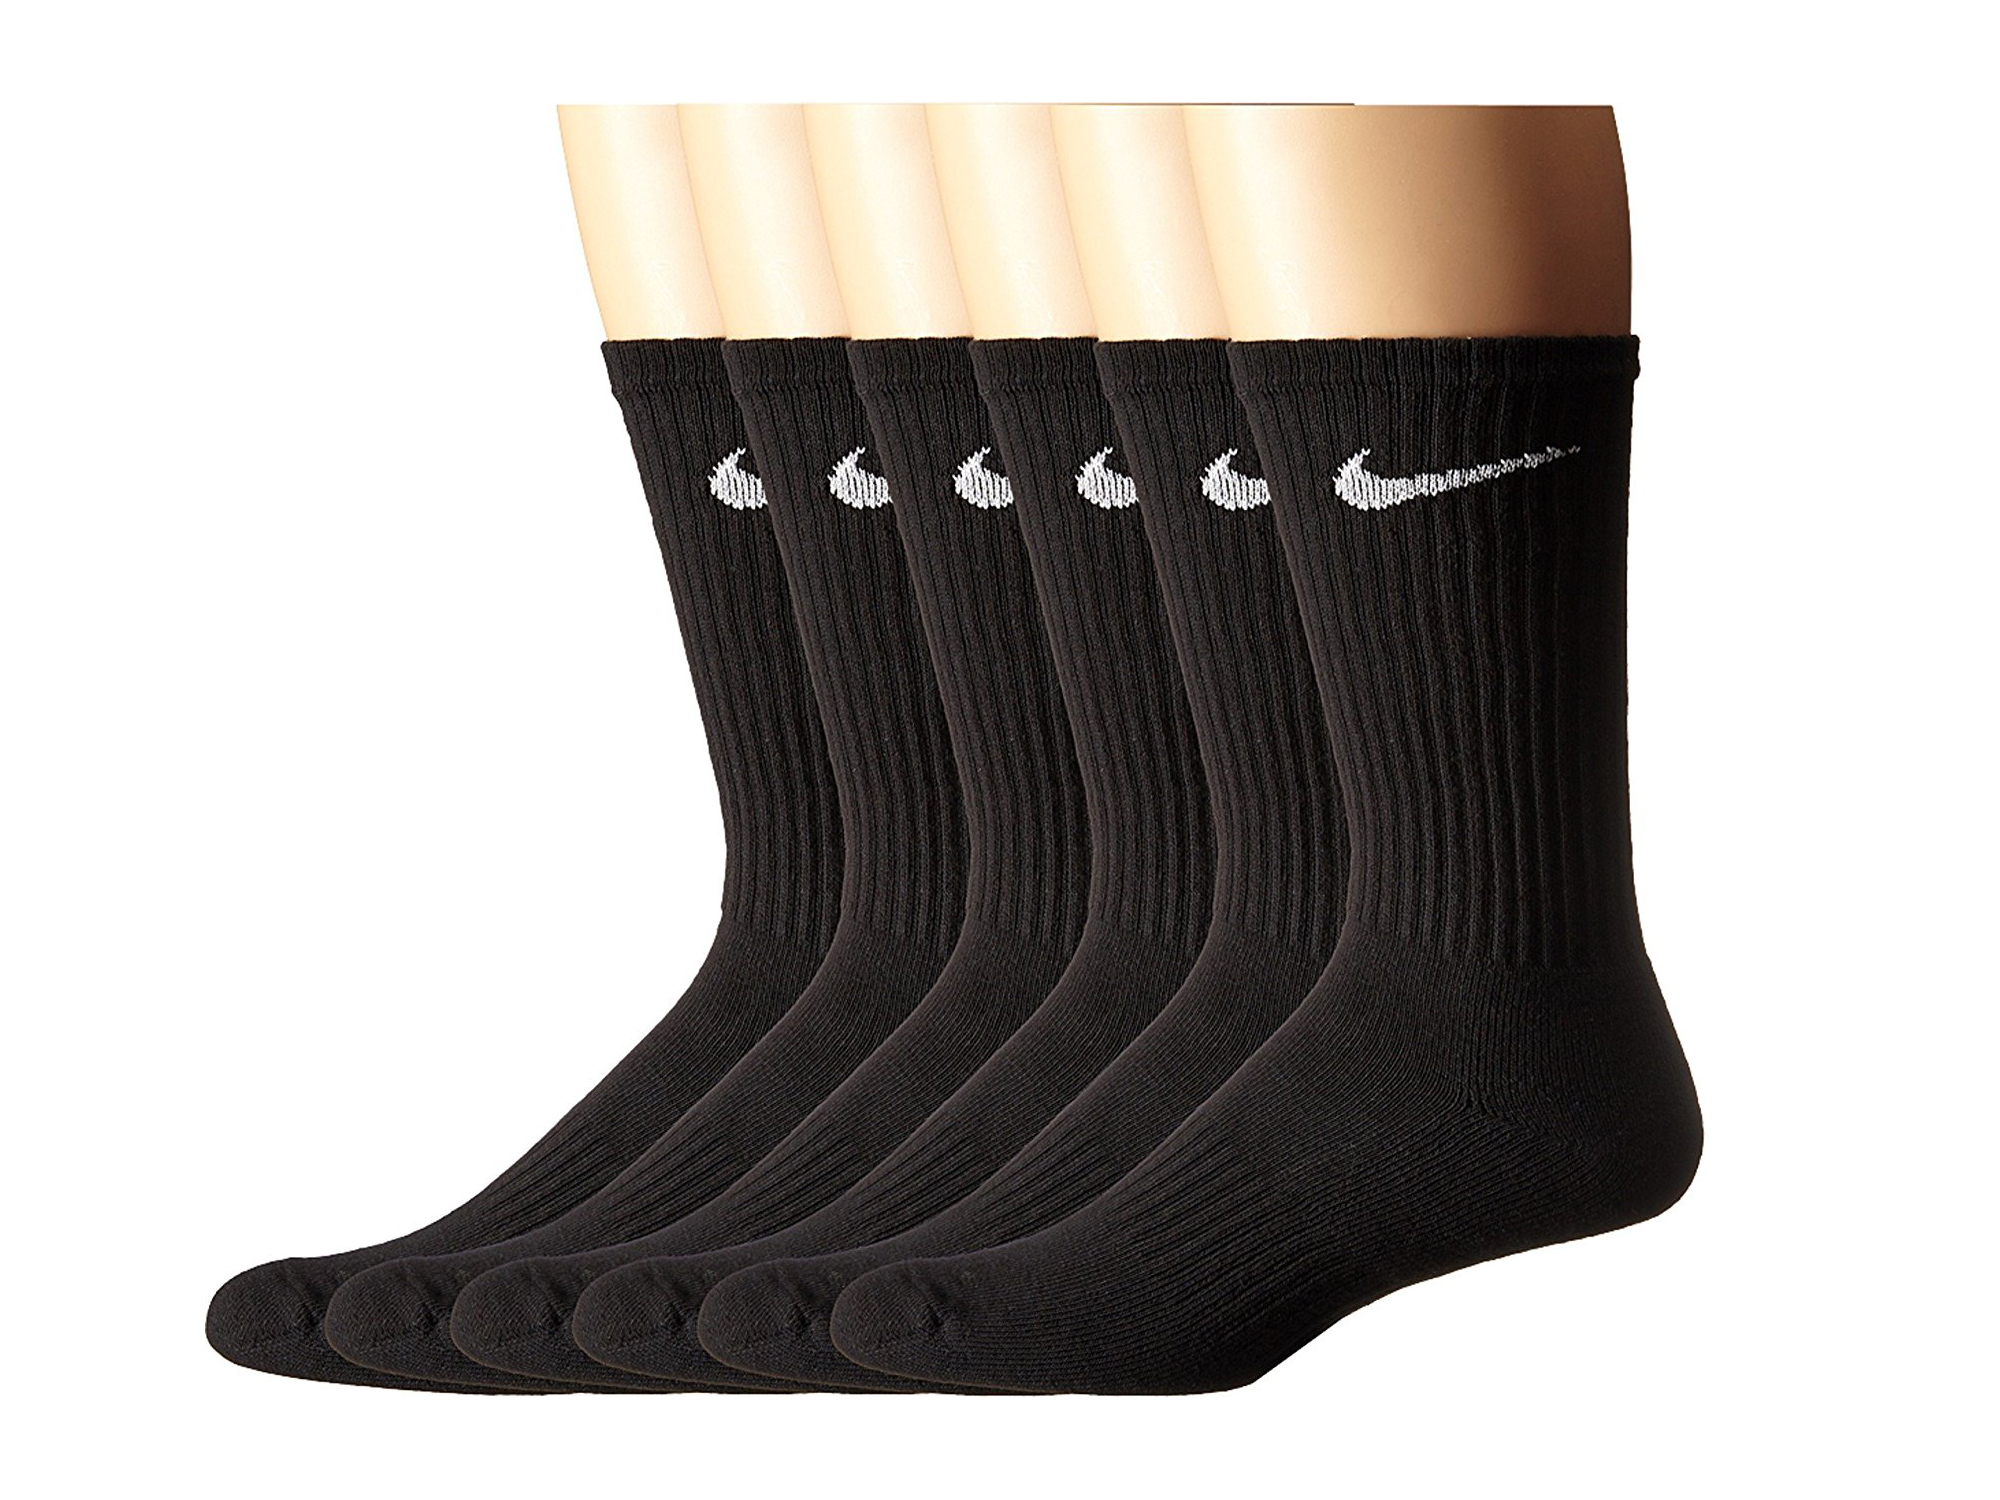 Nike performance socks amazon